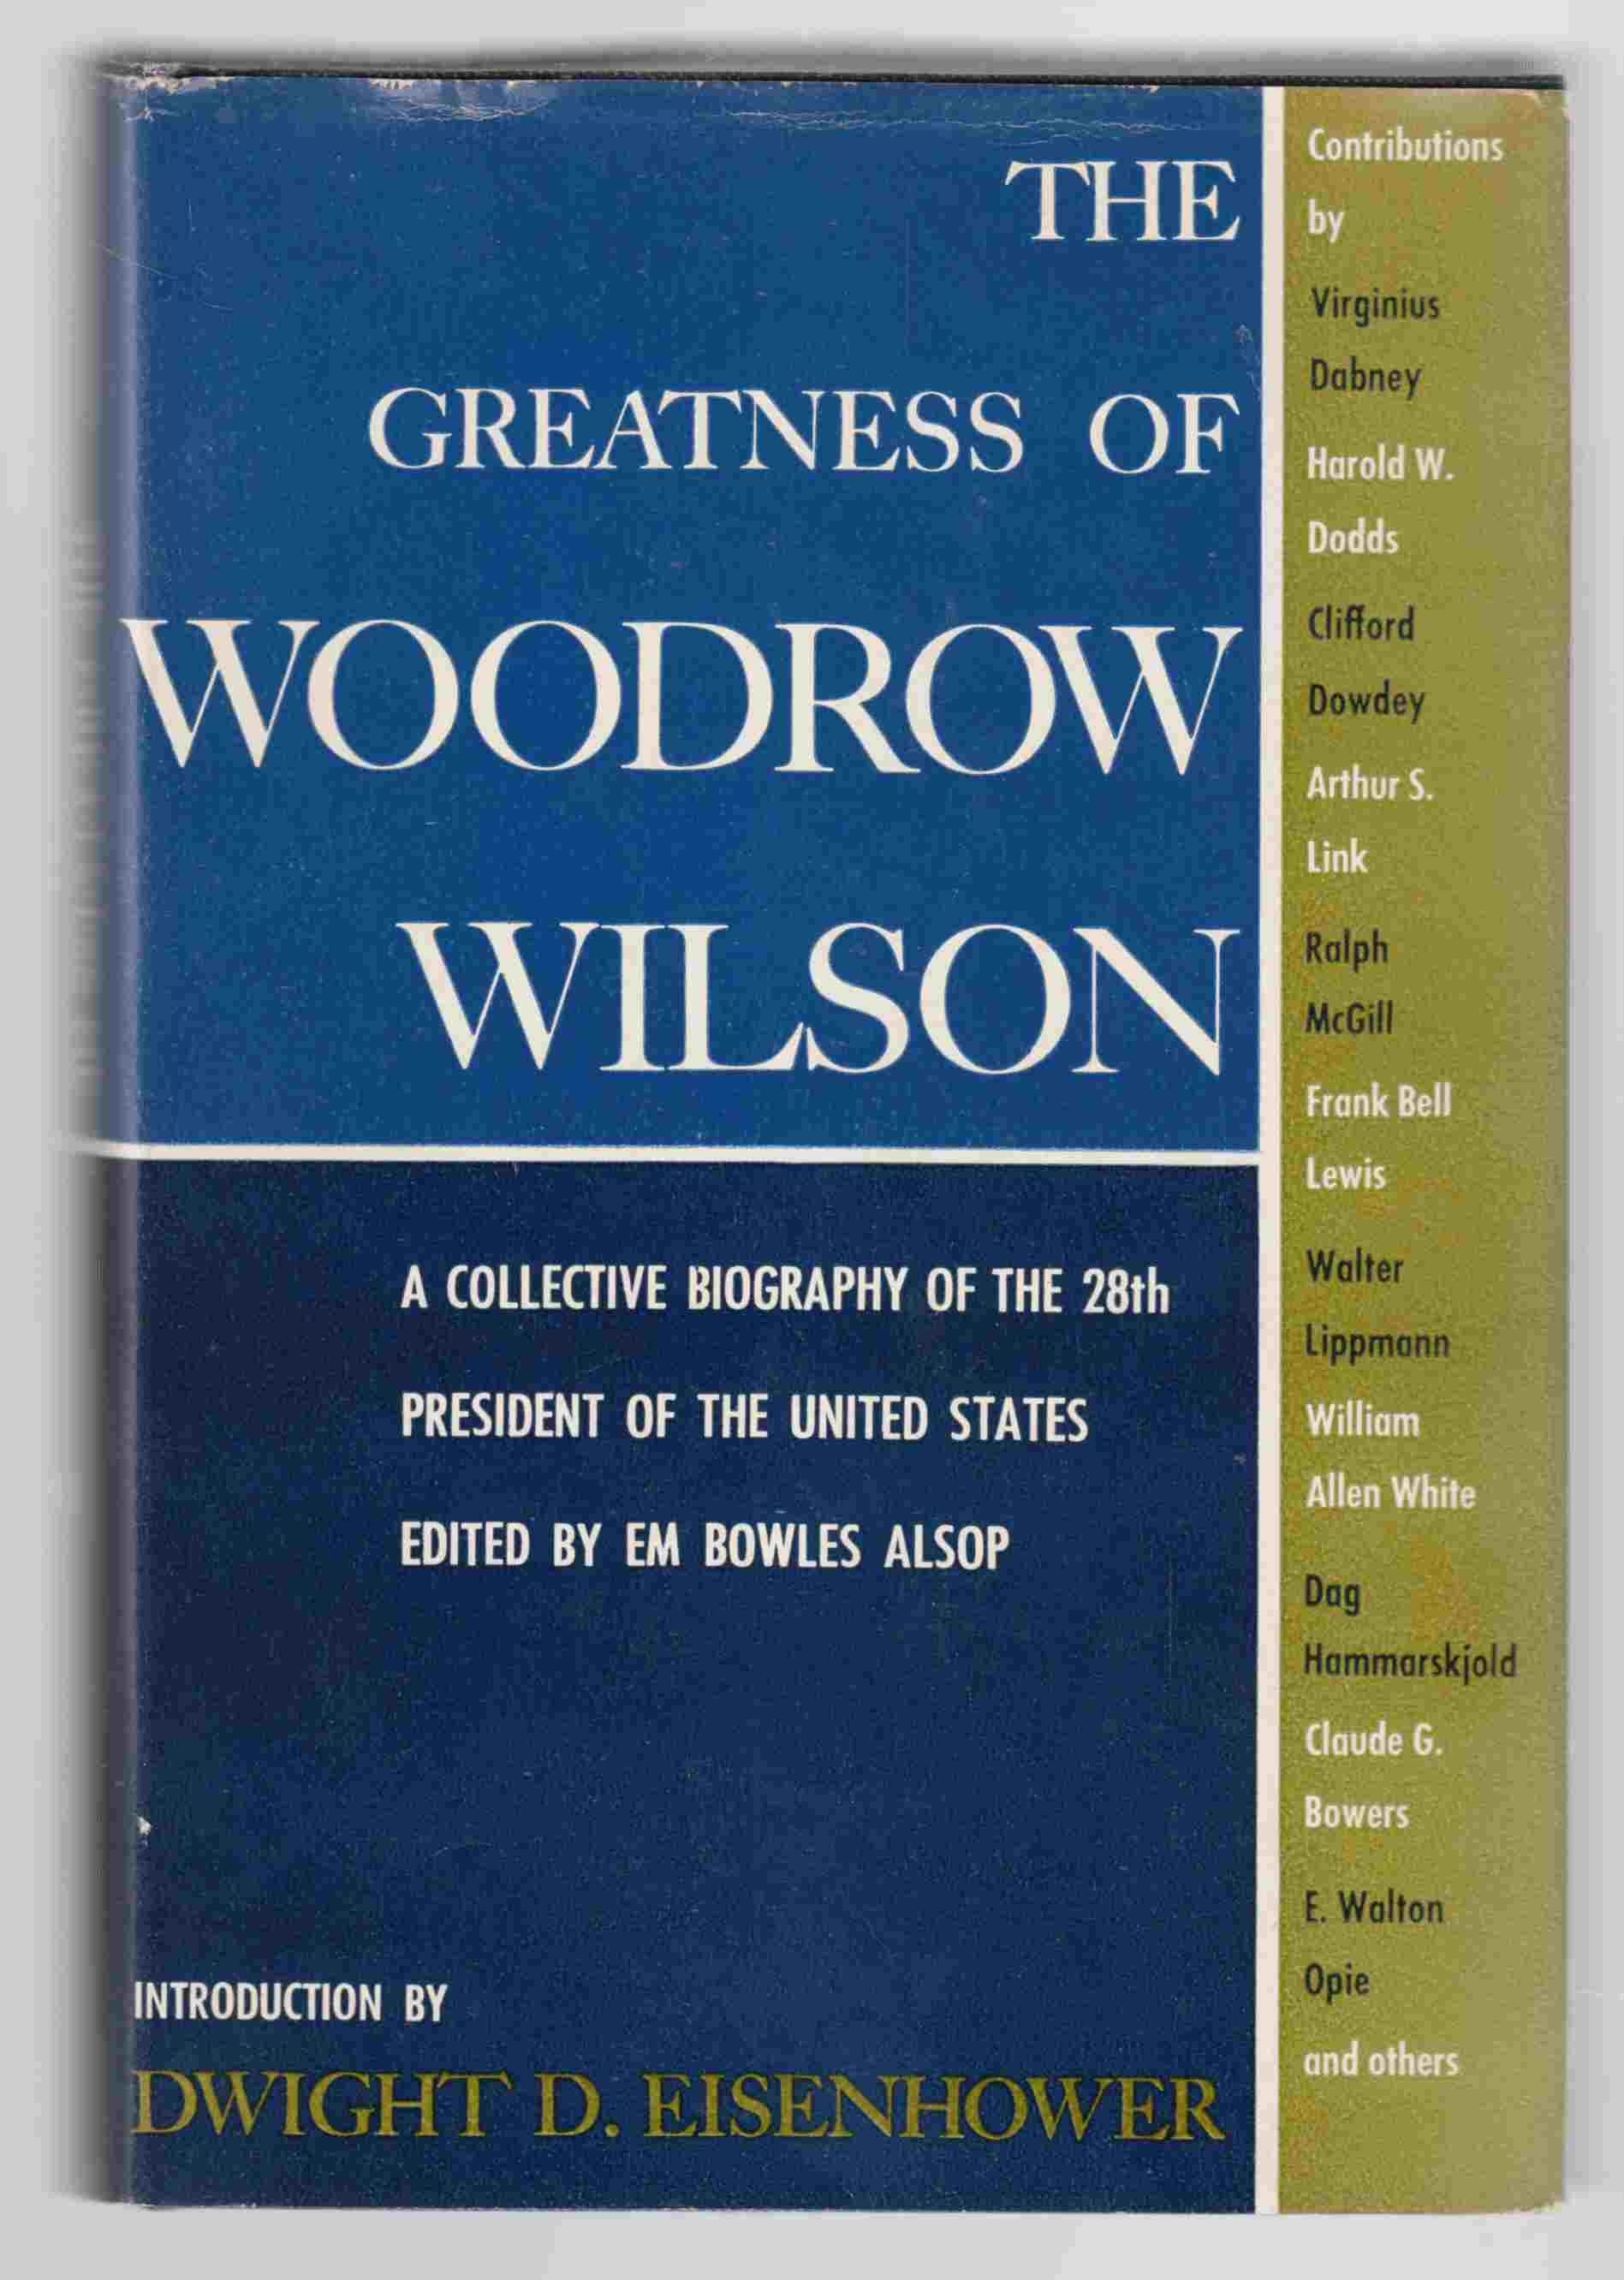 Image for The Greatness of Woodrow Wilson 1856-1956